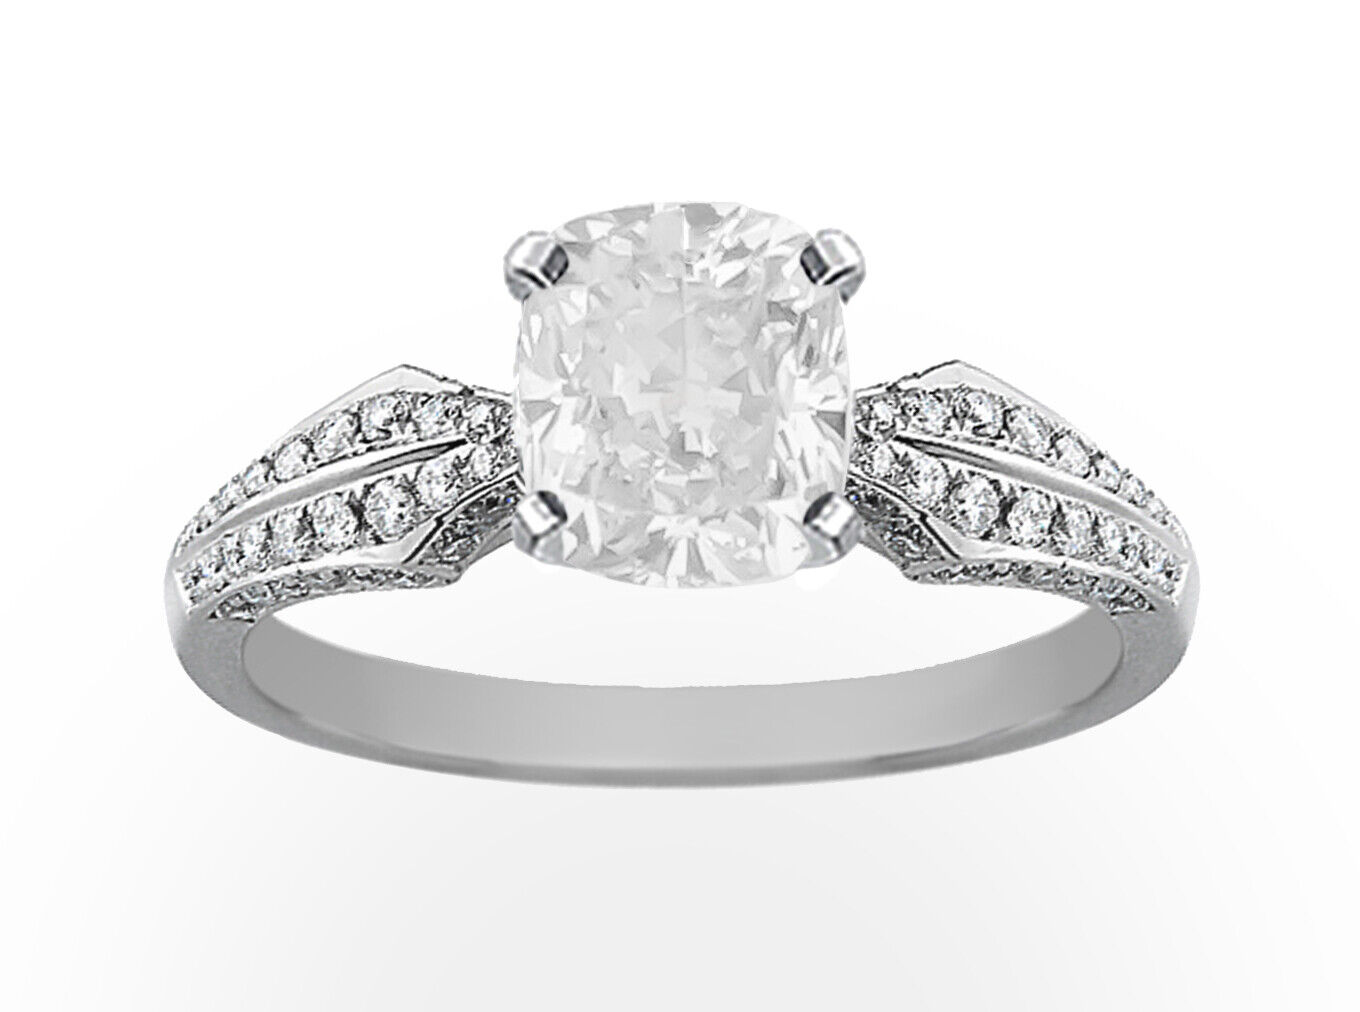 GIA Certified Diamond Engagement Ring 14k White Gold 1.90 CTW Natural Cushion